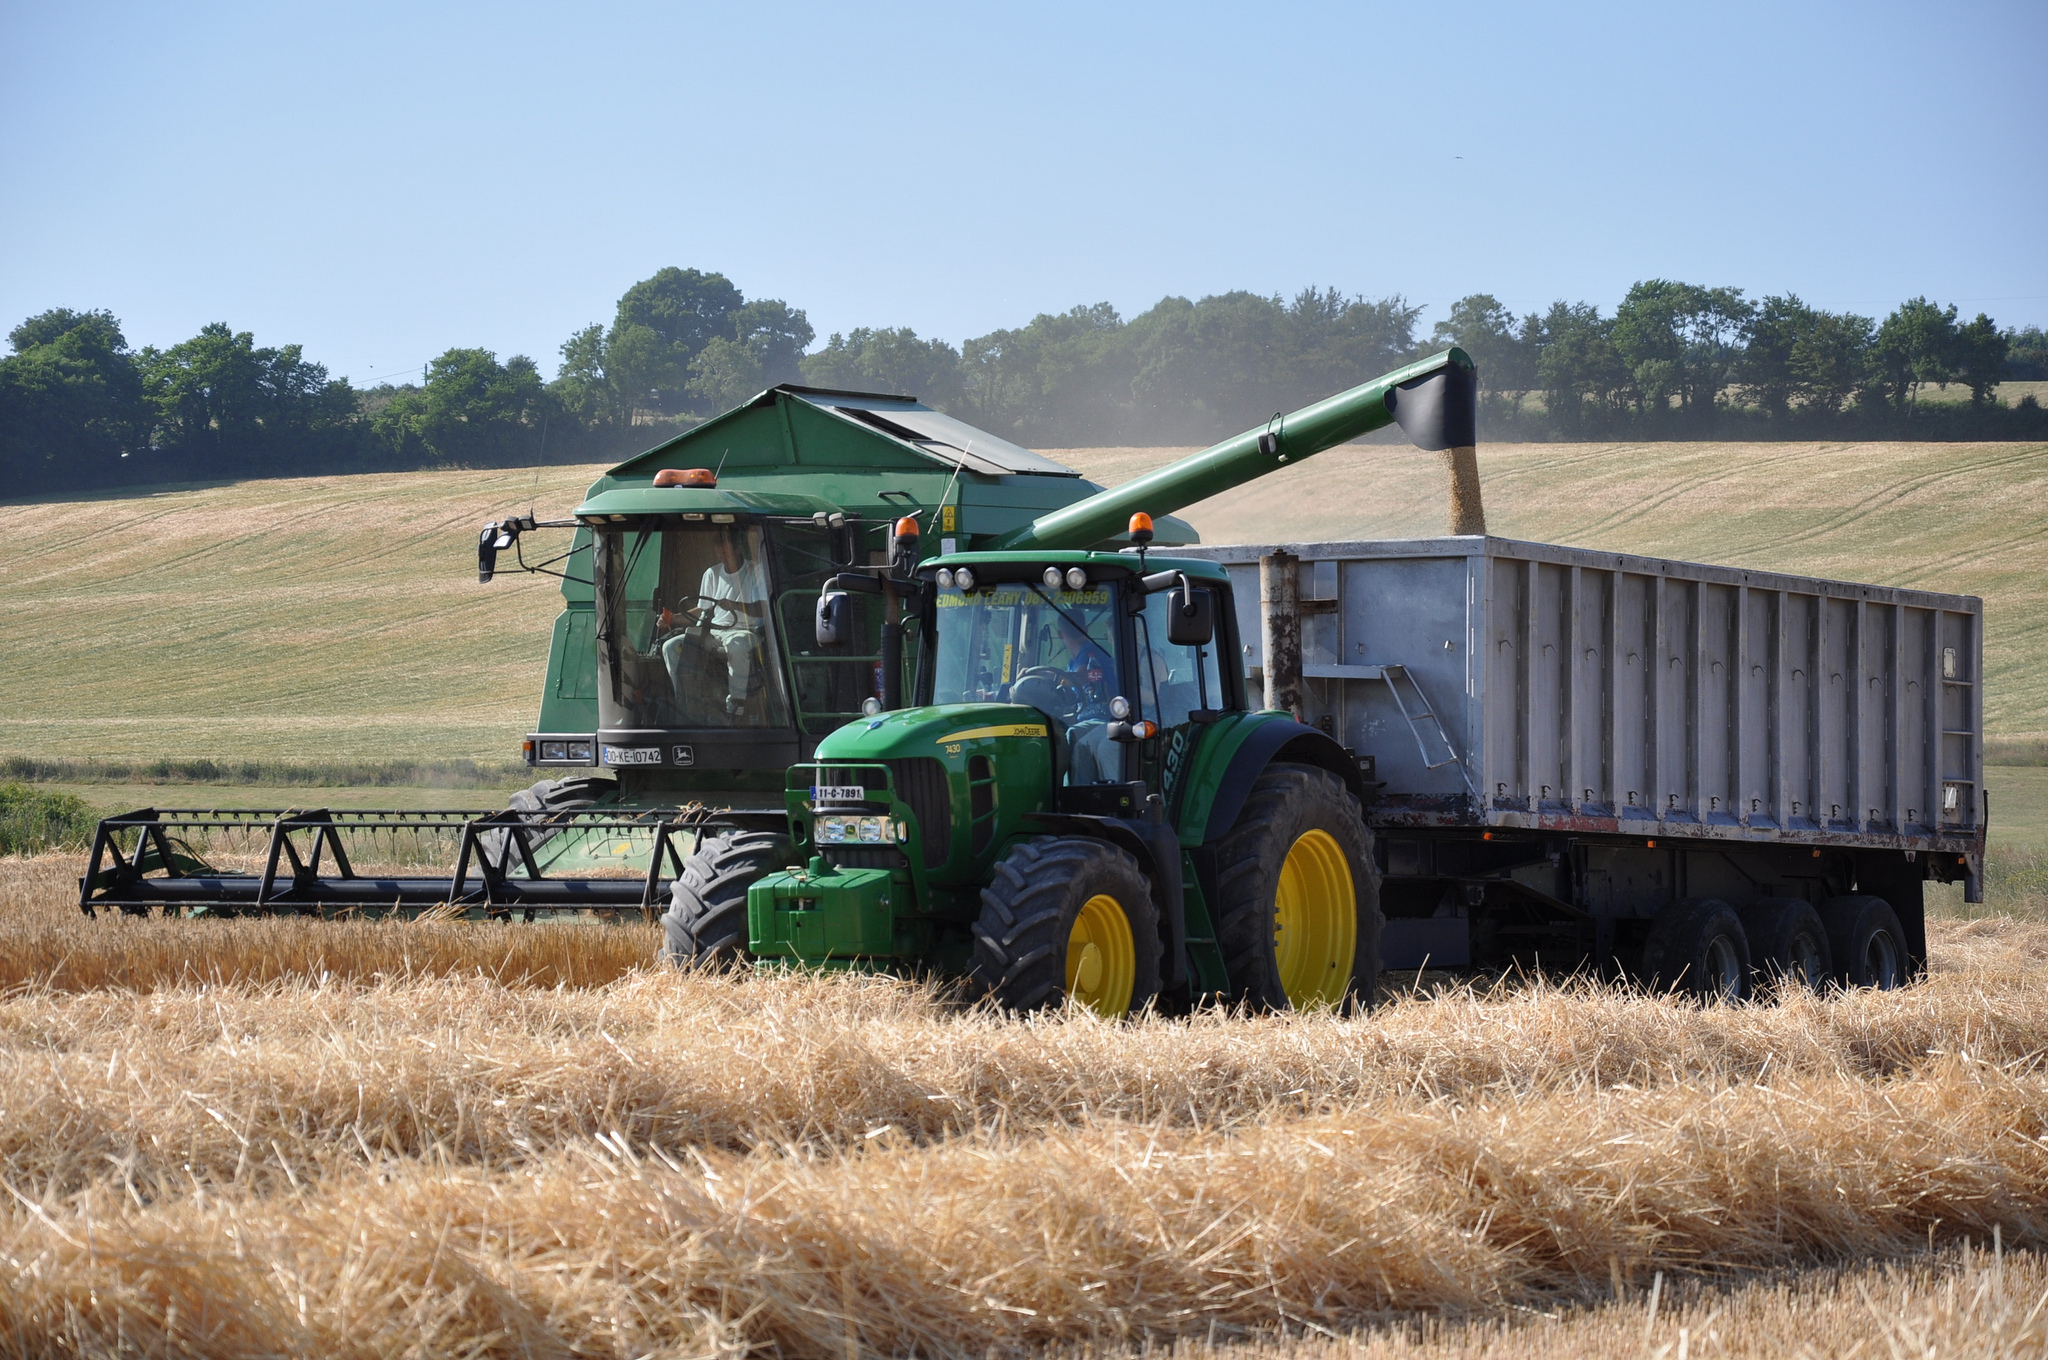 49% of tillage farmers see world grain prices as a threat - survey